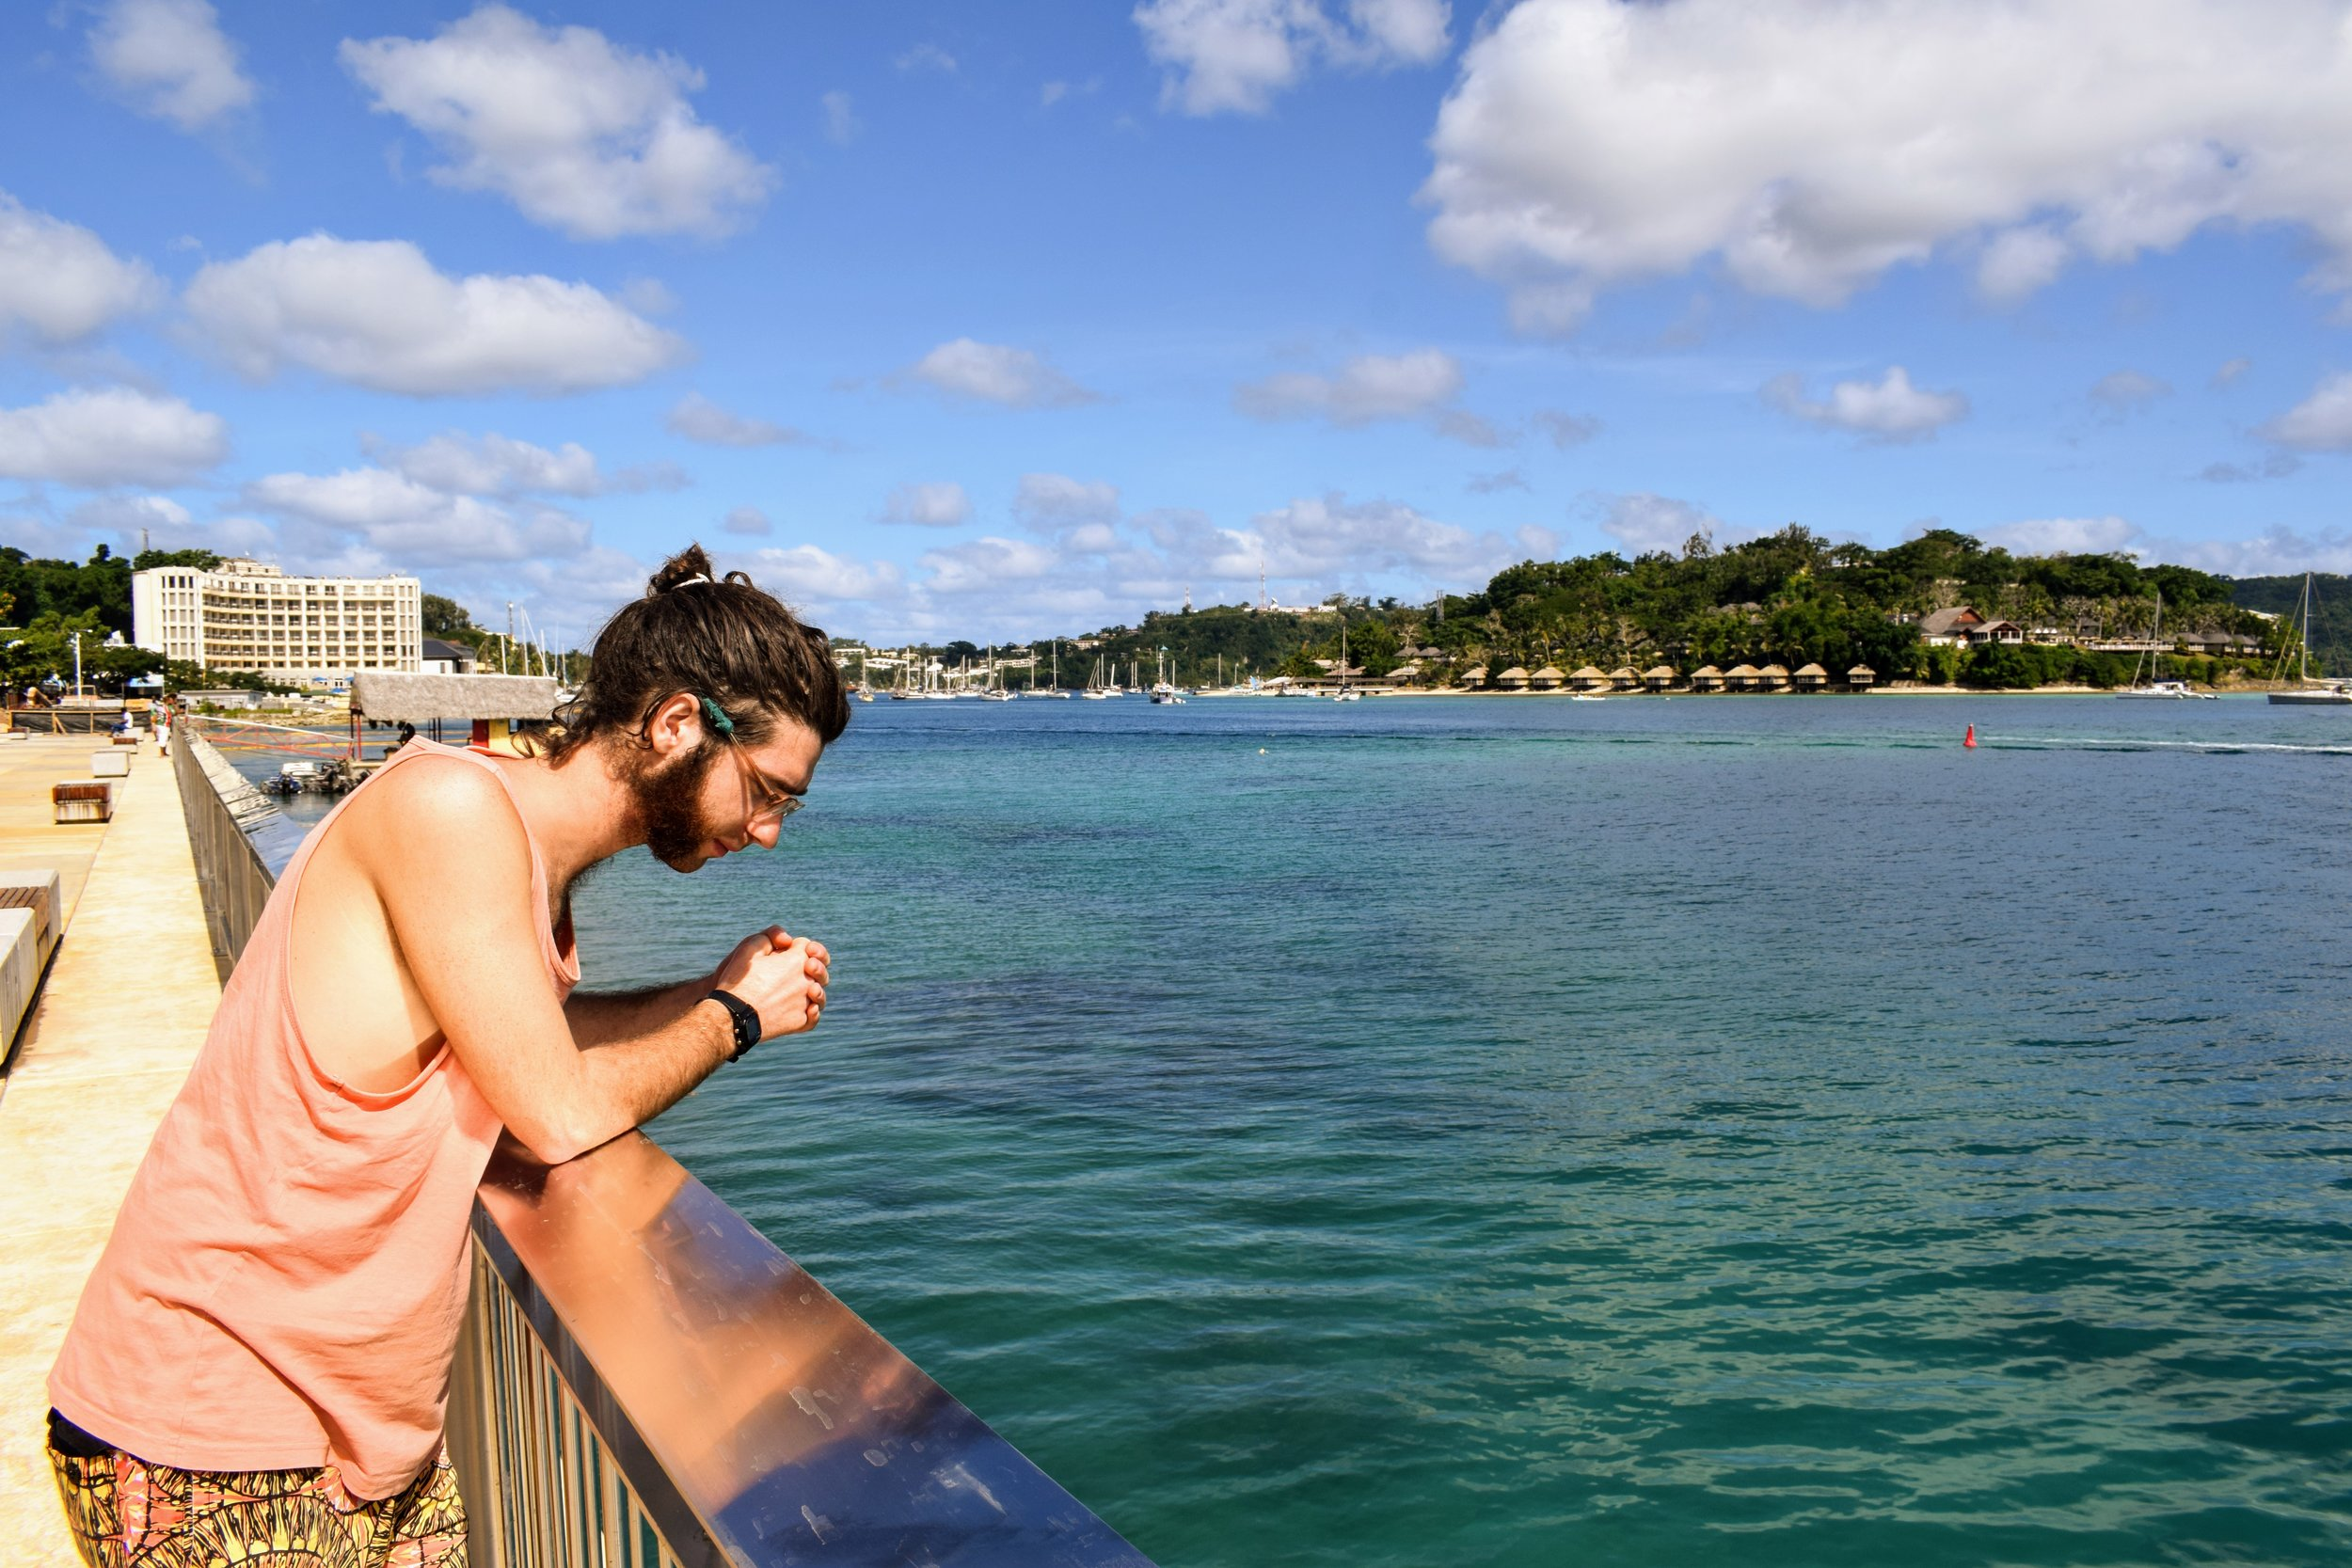 Looking for fish in the clear waters off of Vila's Promenade.